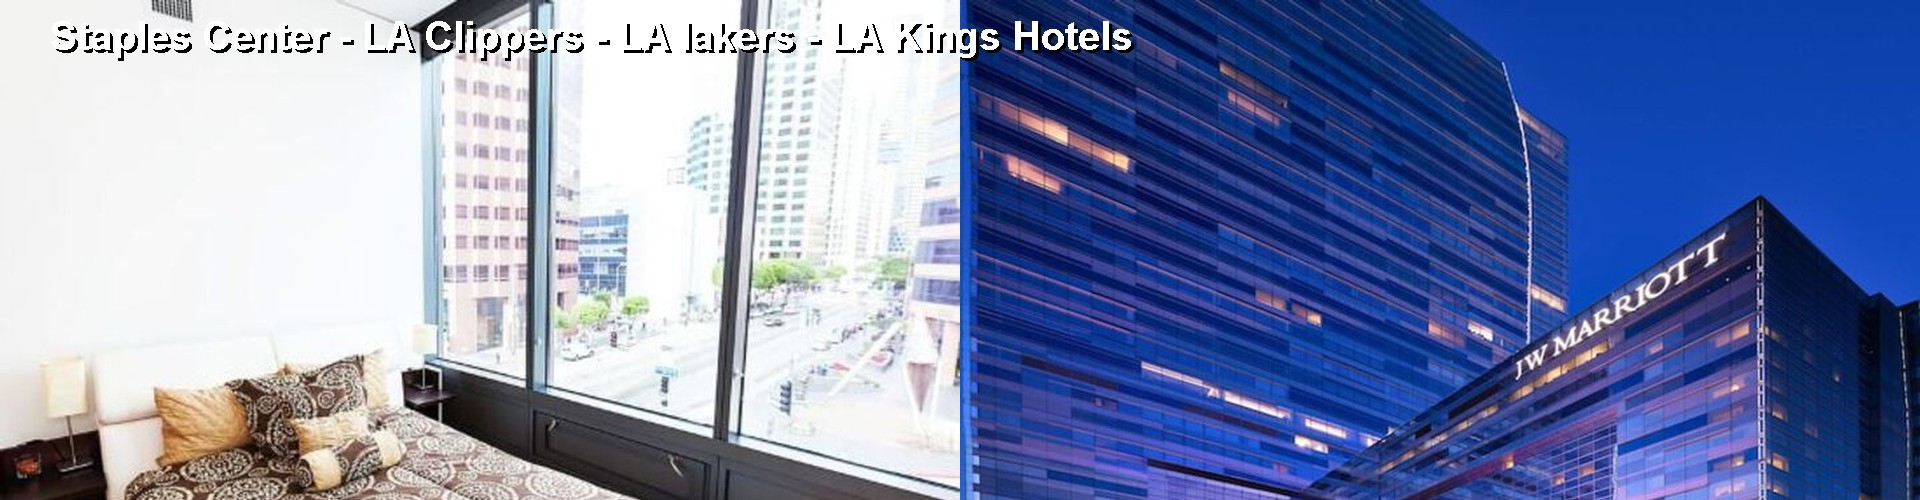 5 Best Hotels Near Staples Center La Clippers Lakers Kings